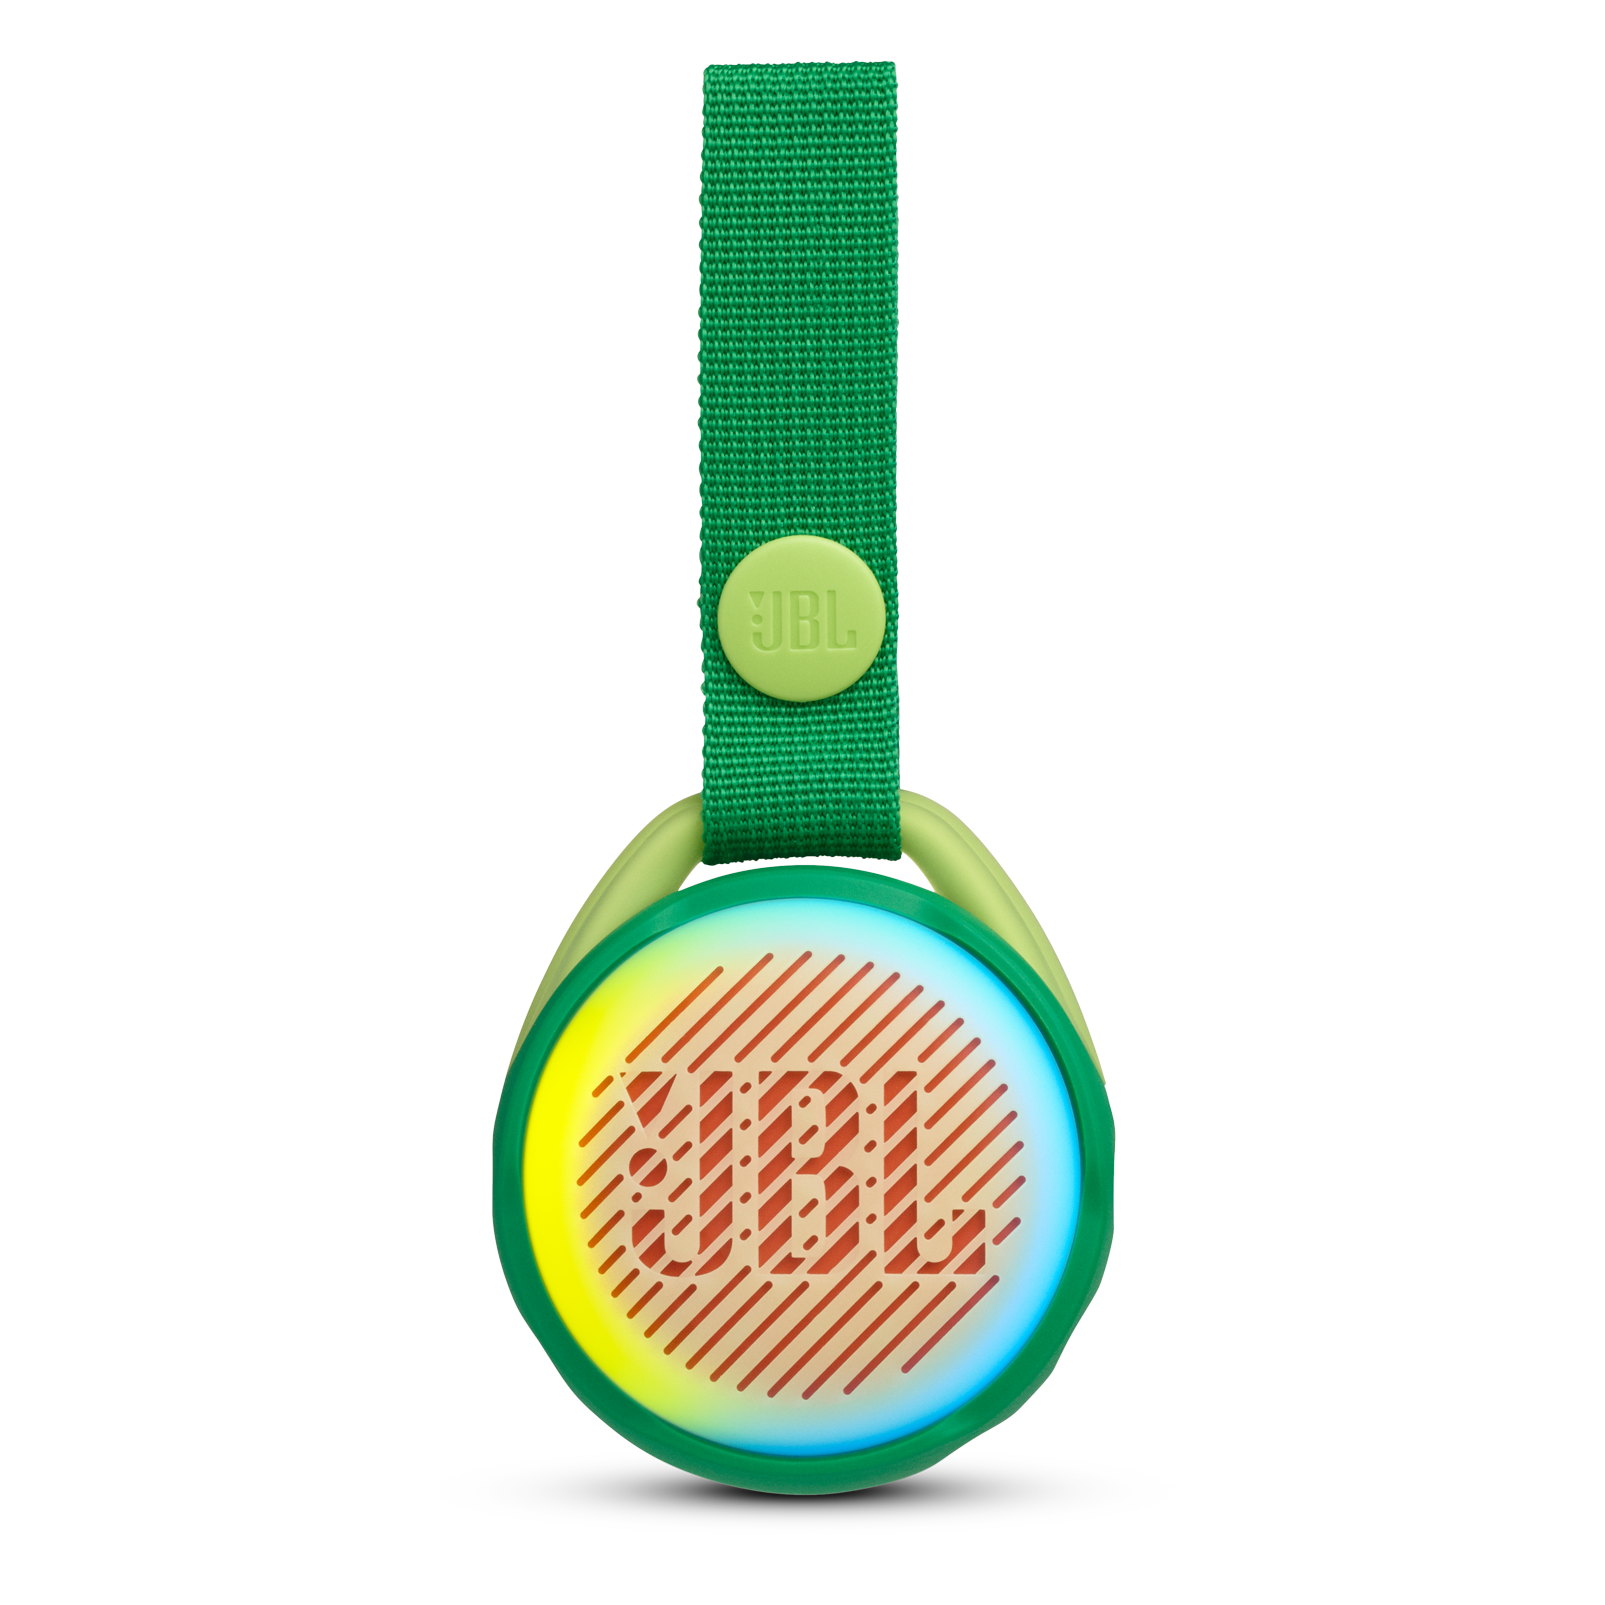 JBL JR POP - Froggy Green - Portable speaker for kids - Front